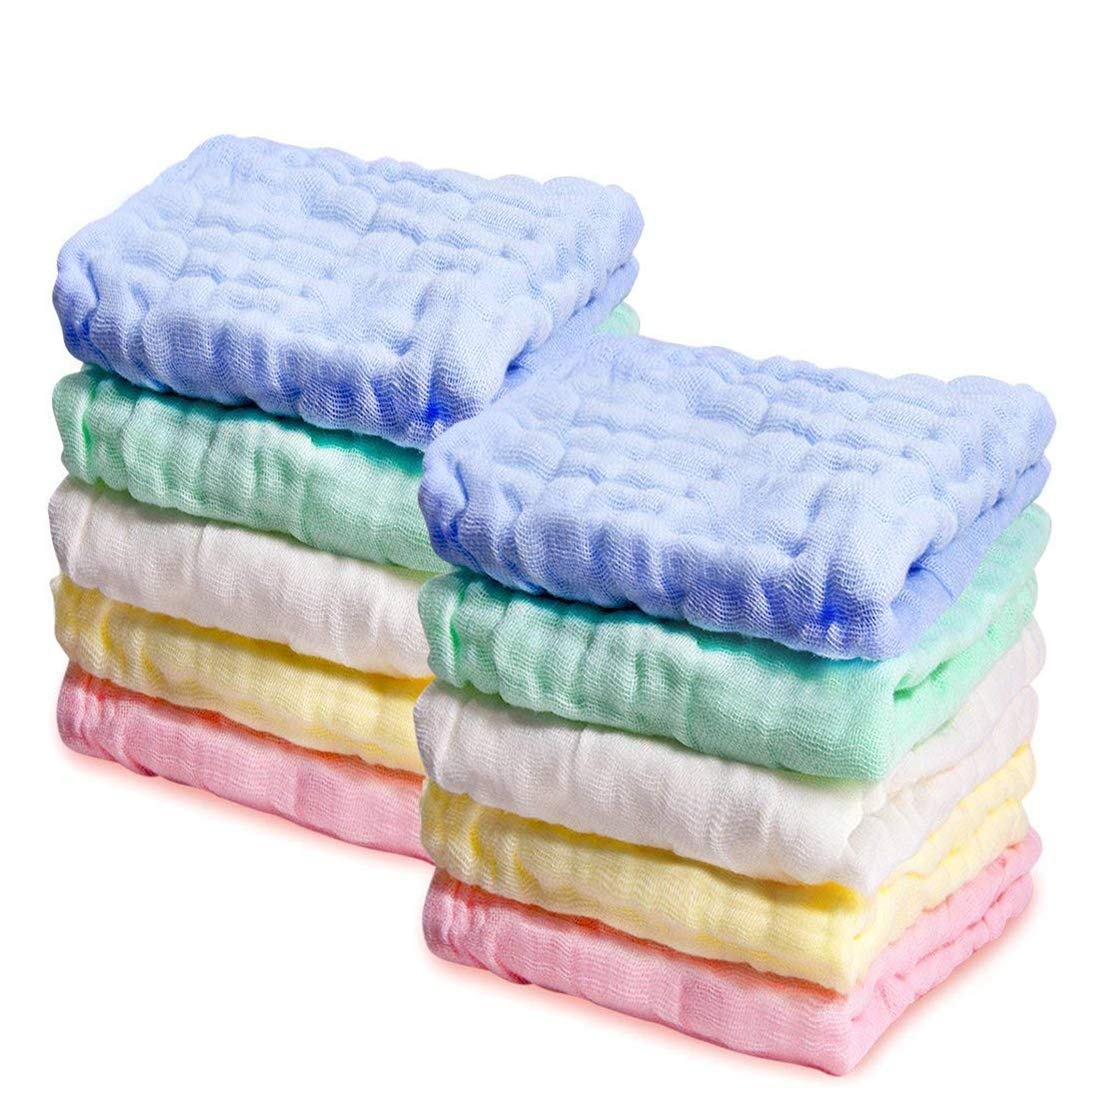 Kyapoo Baby Muslin Washcloths, Towels Premium Extra Soft Newborn Baby Face Towel, Baby Registry as Shower Gift 5 Pack KYP9099